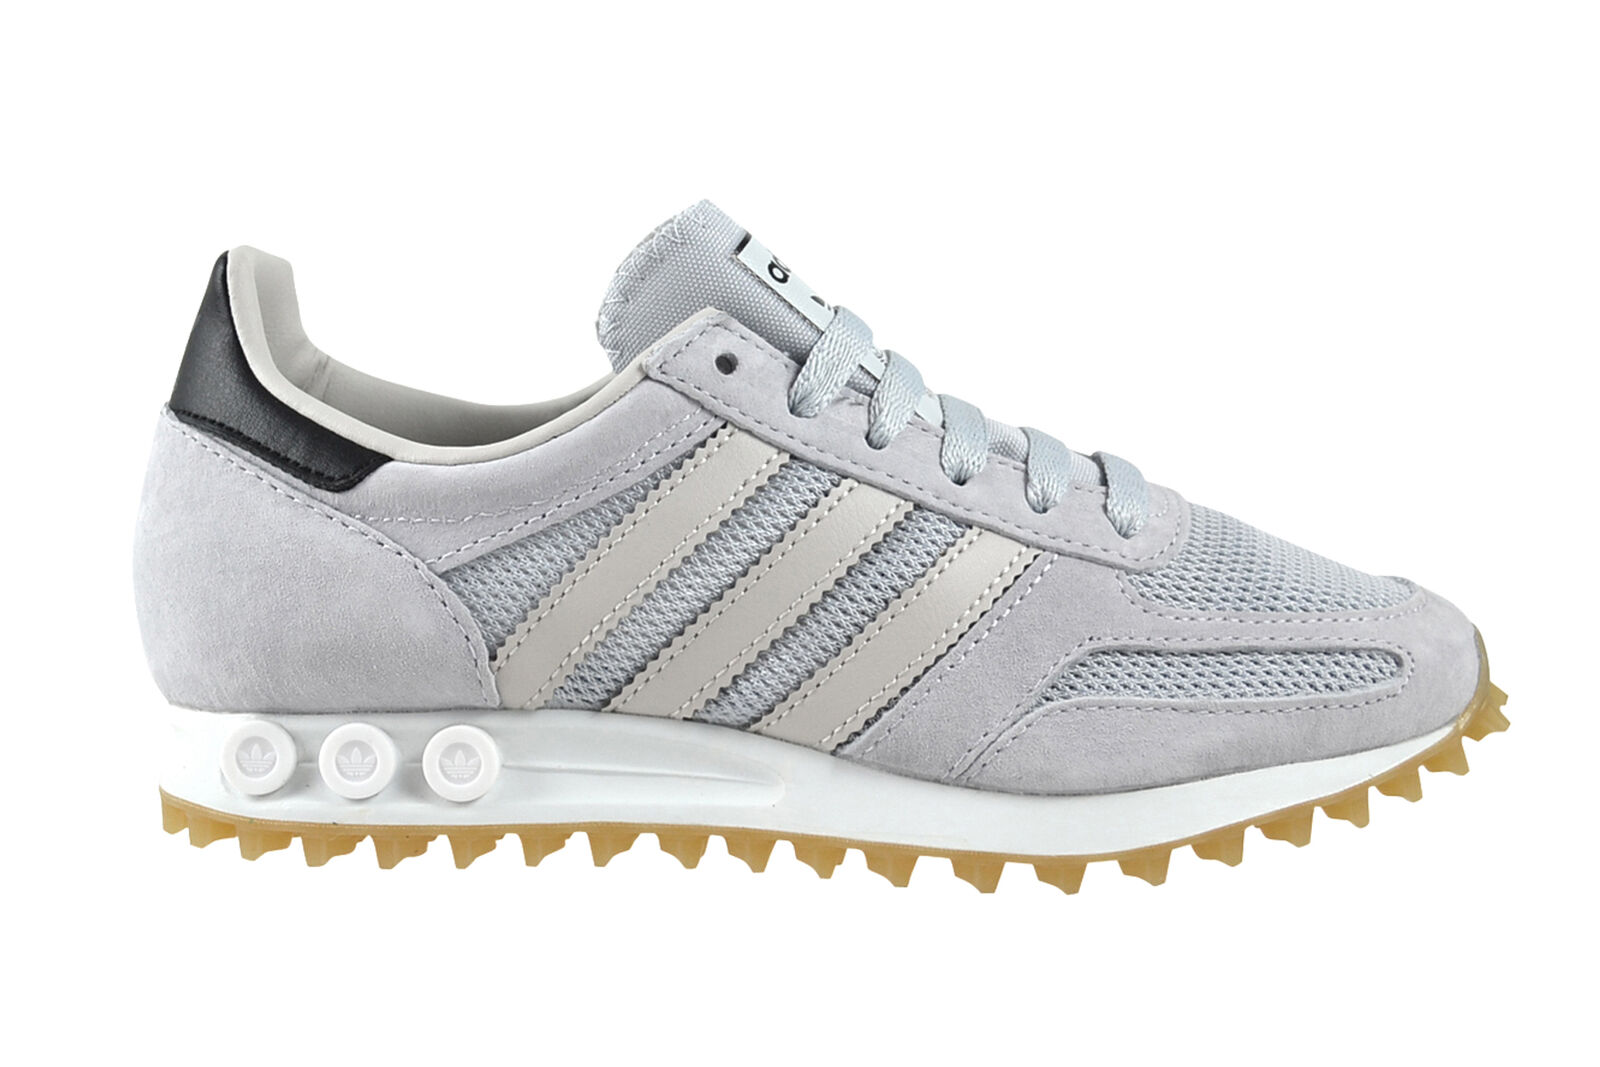 Chaussures Grey Sneaker Gum4 Clear La Trainer Adidas Og wPx407Aaq